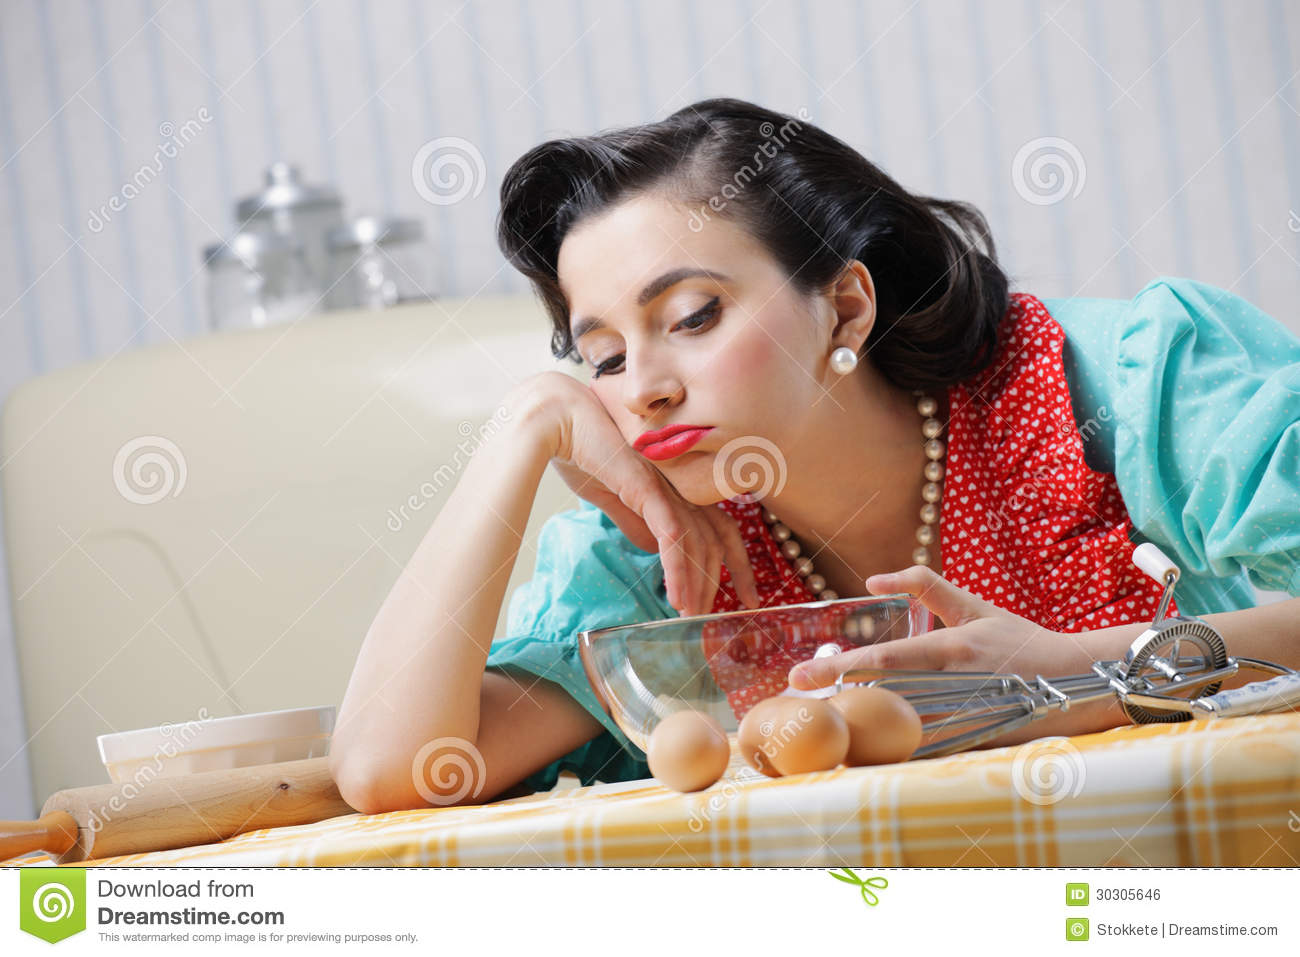 Bored Housewife Royalty Free Stock Image - Image: 30305646